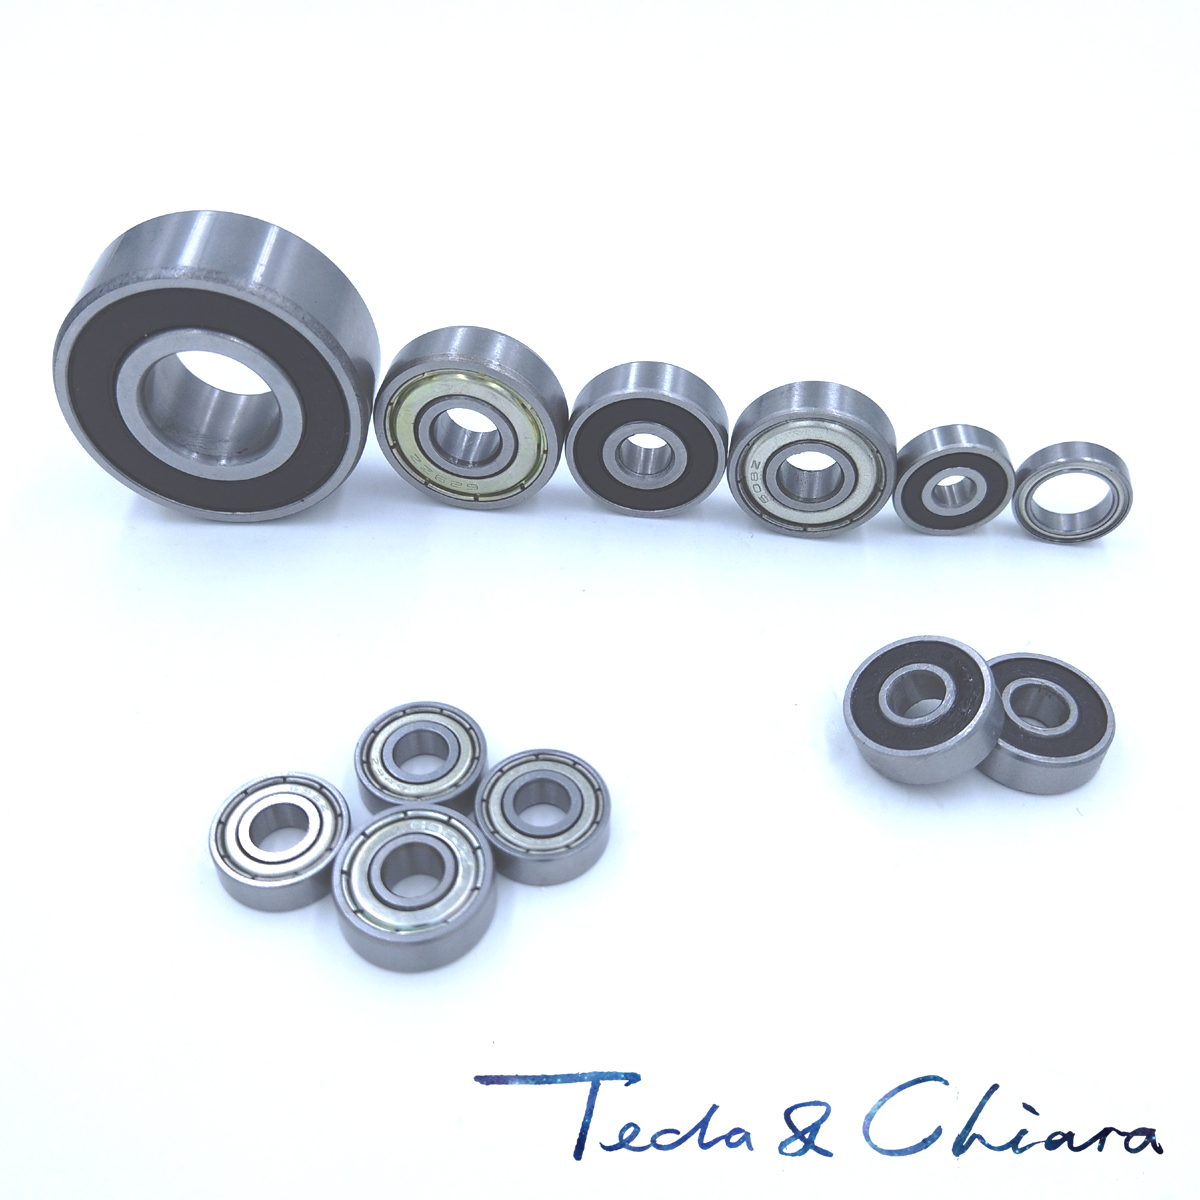 10Pcs 6201-RS Double Rubber Sealed Shielded Miniature Bearing Steel Deep Groove Ball Bearing 12mm